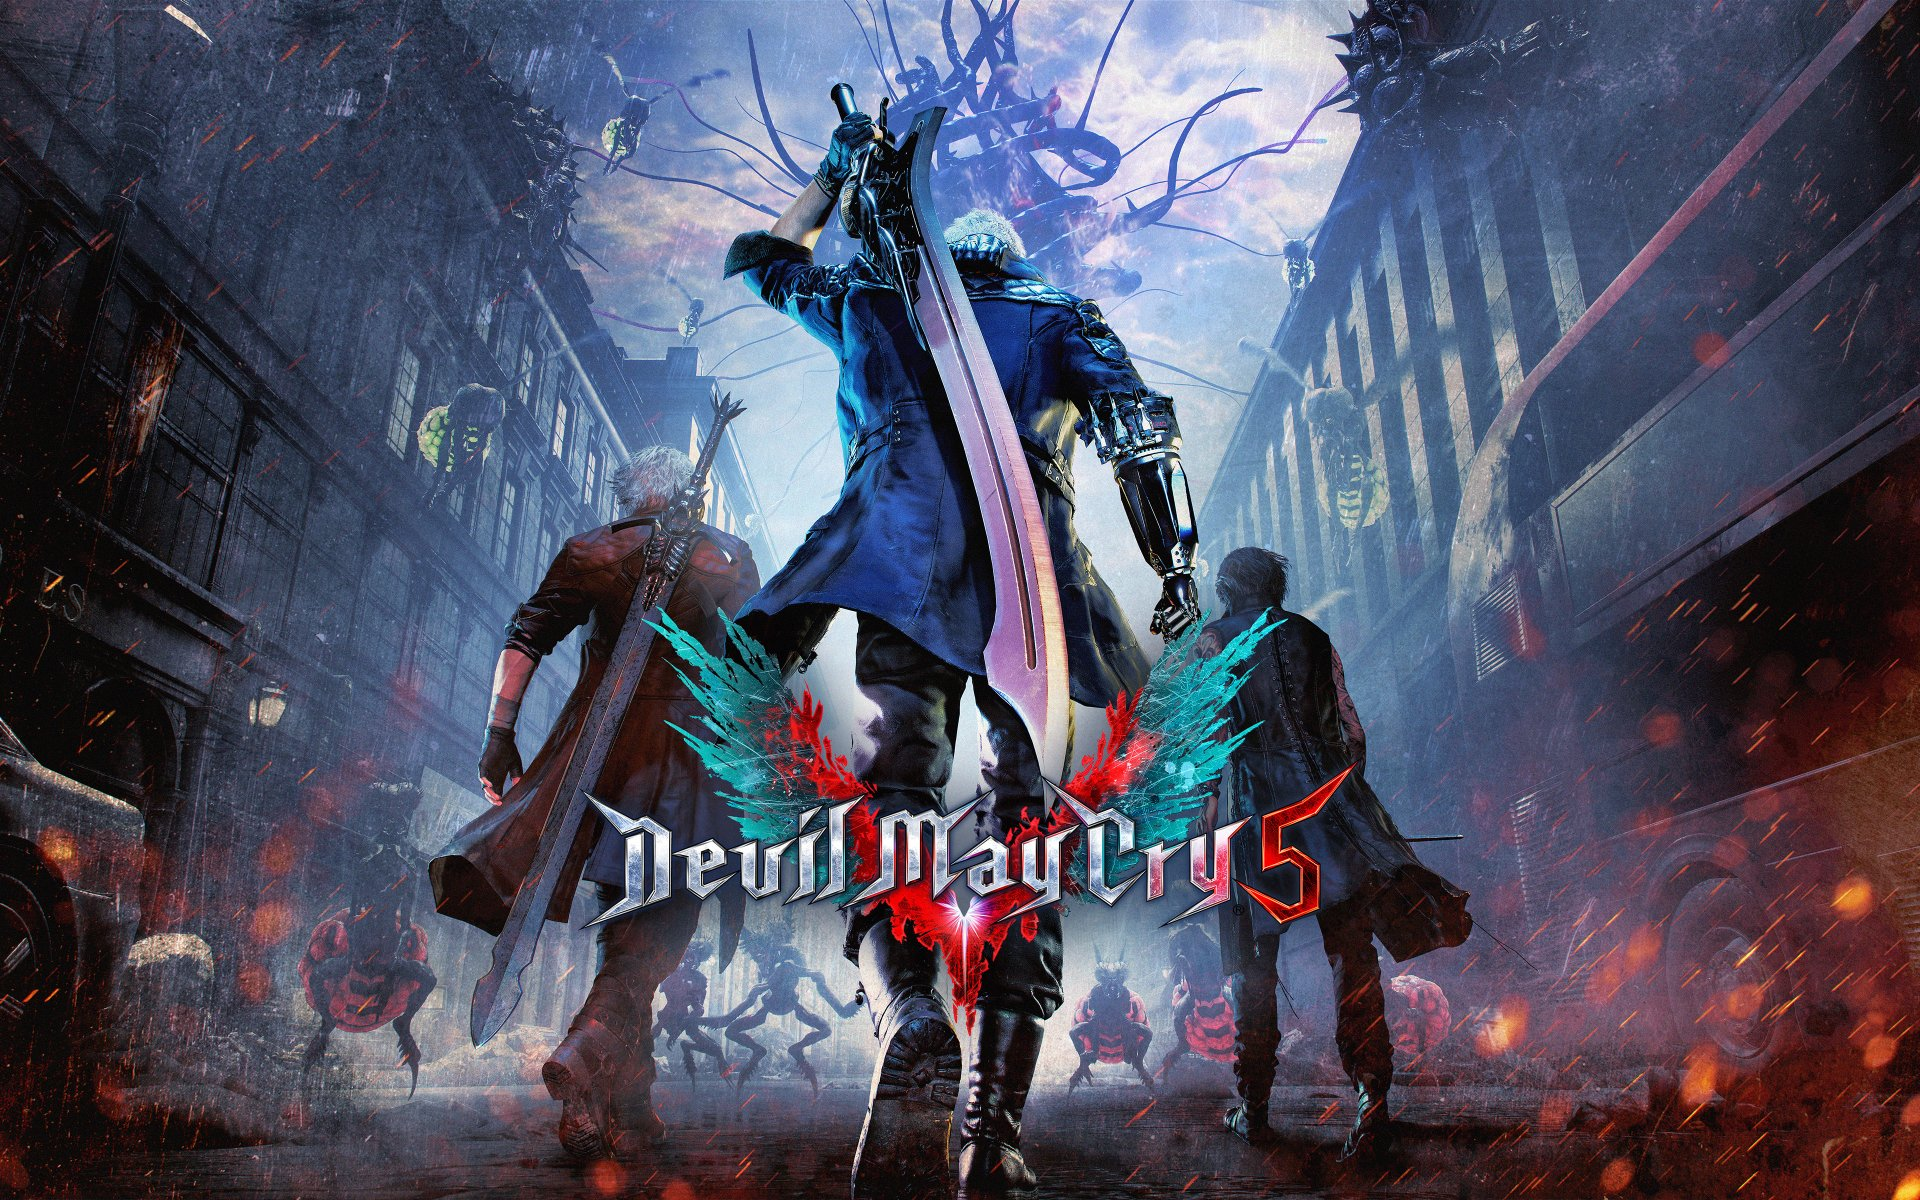 game play station 4 Devil May Cry 5